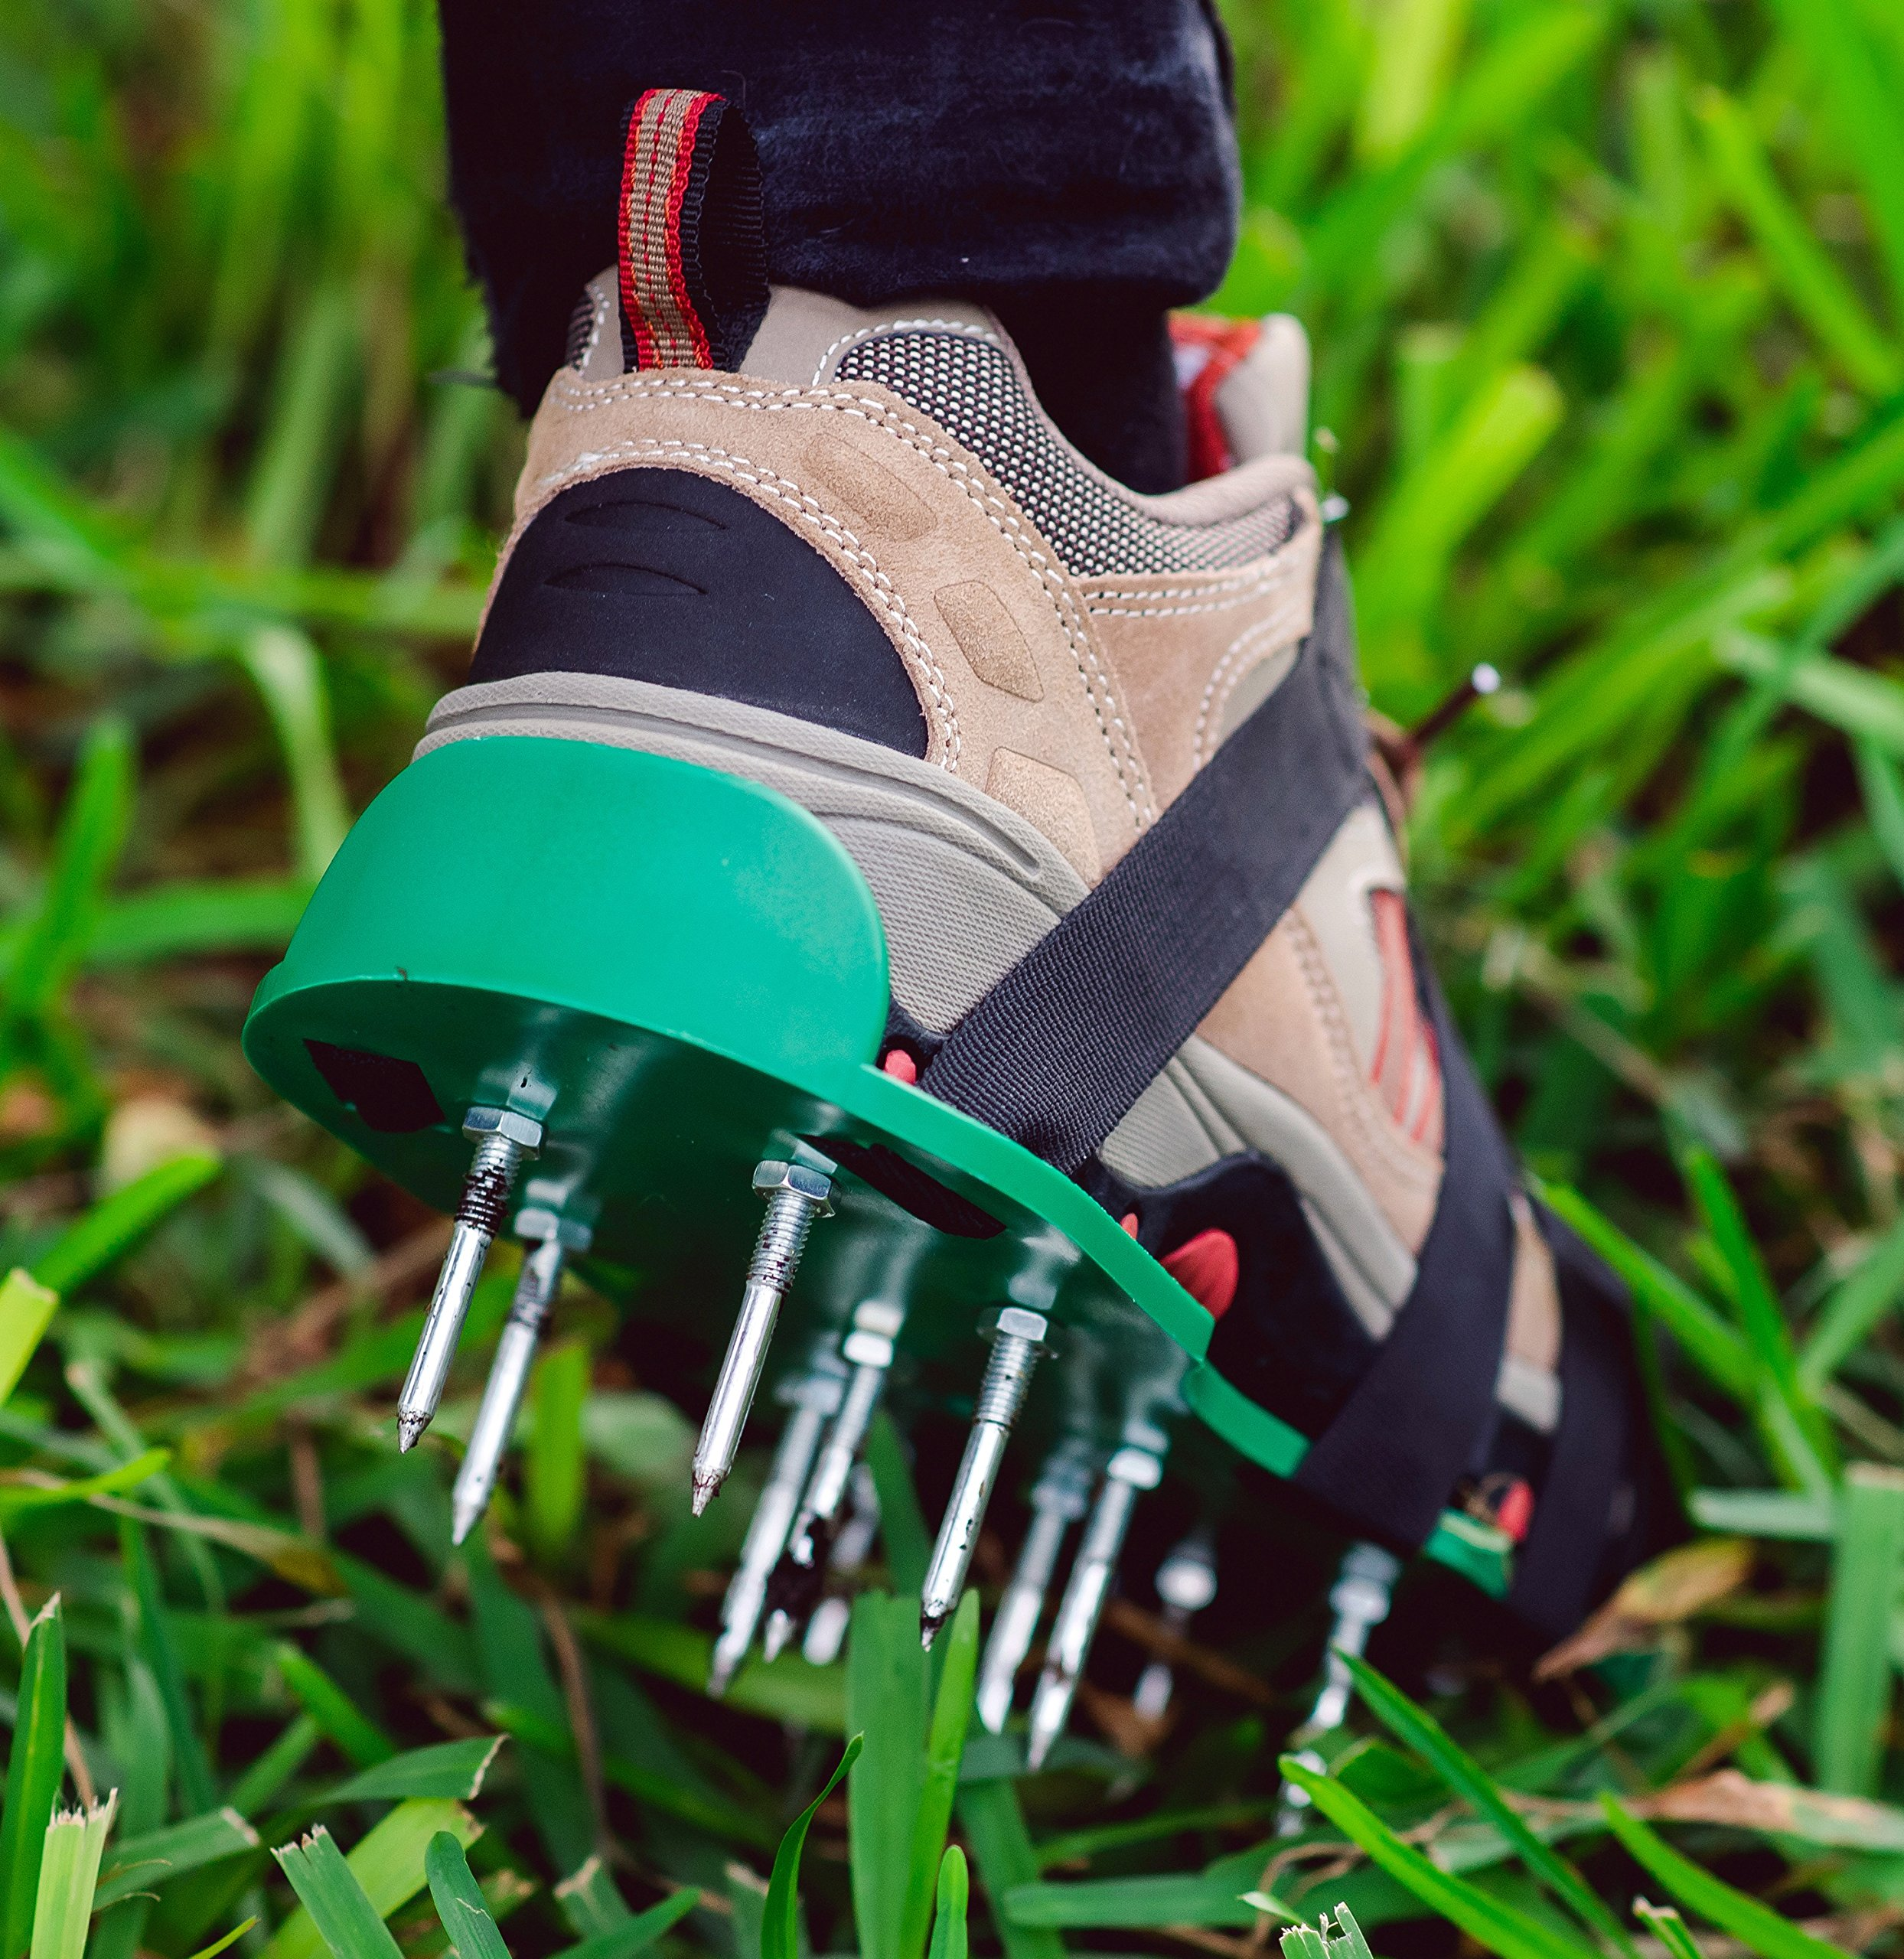 Lawn Aerator Spiked Shoes-Heavy Duty Metal Buckles, 4 Adjustable Straps and Sharper Spikes for Effective Soil Aeration and Greener Yard-One Size Fits All-Includes Storage Bag and Garden Gloves by Andes Broos